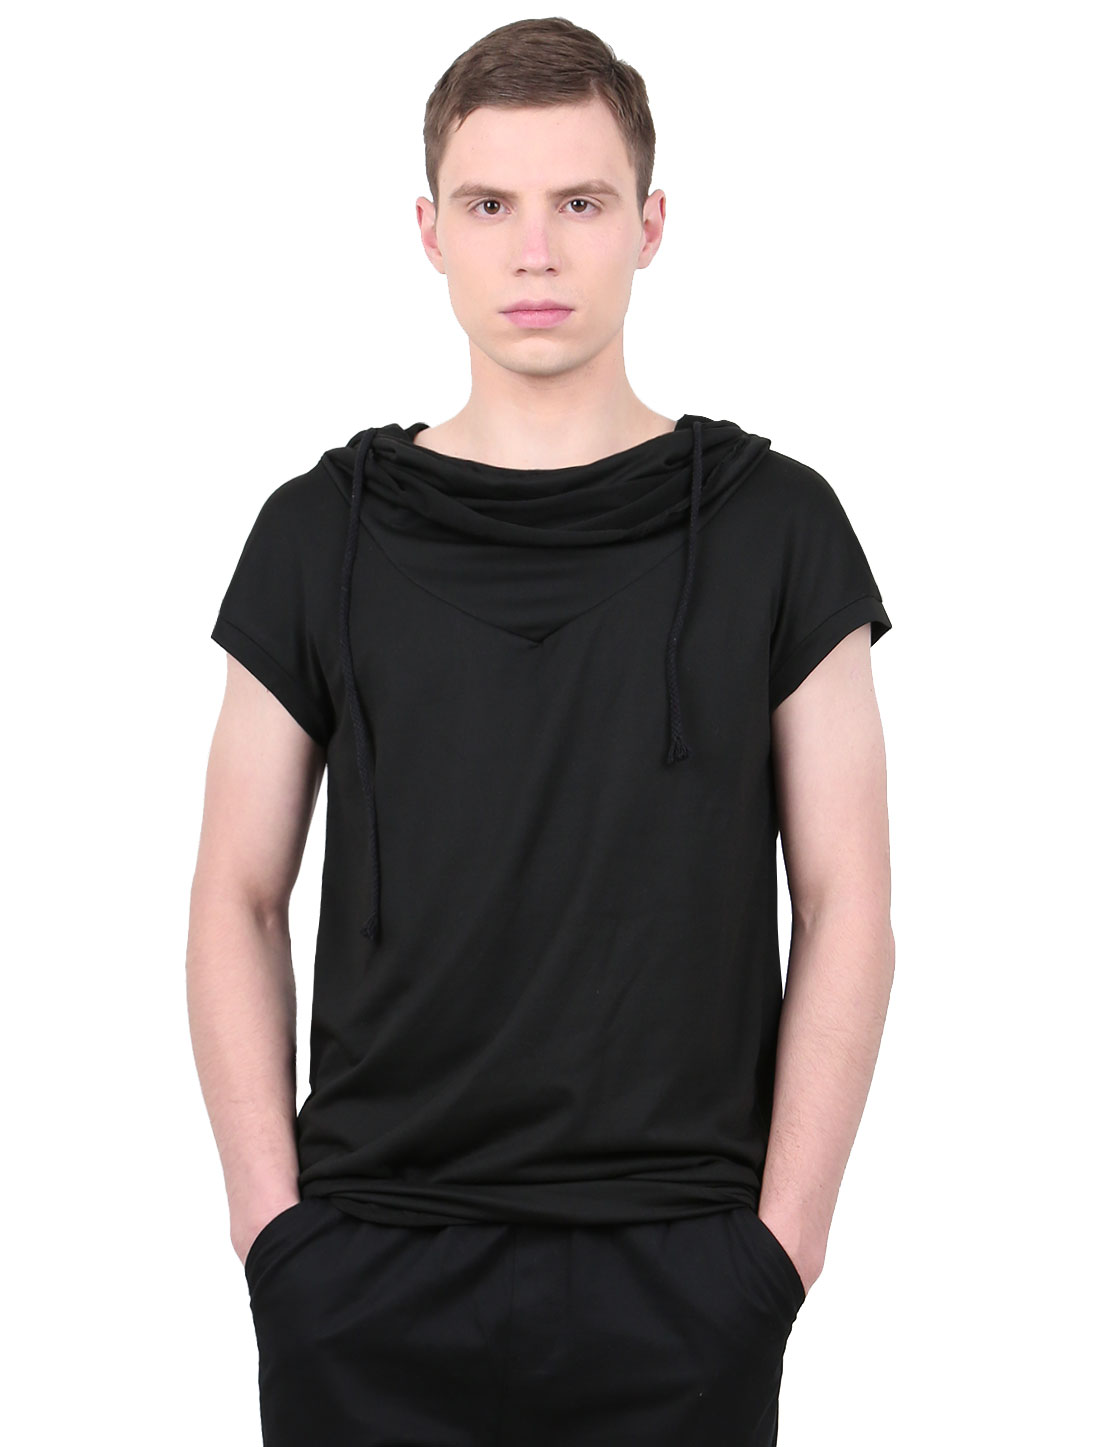 Men Black Stylish Short Sleeve Pullover Hoodie Top Shirt XL